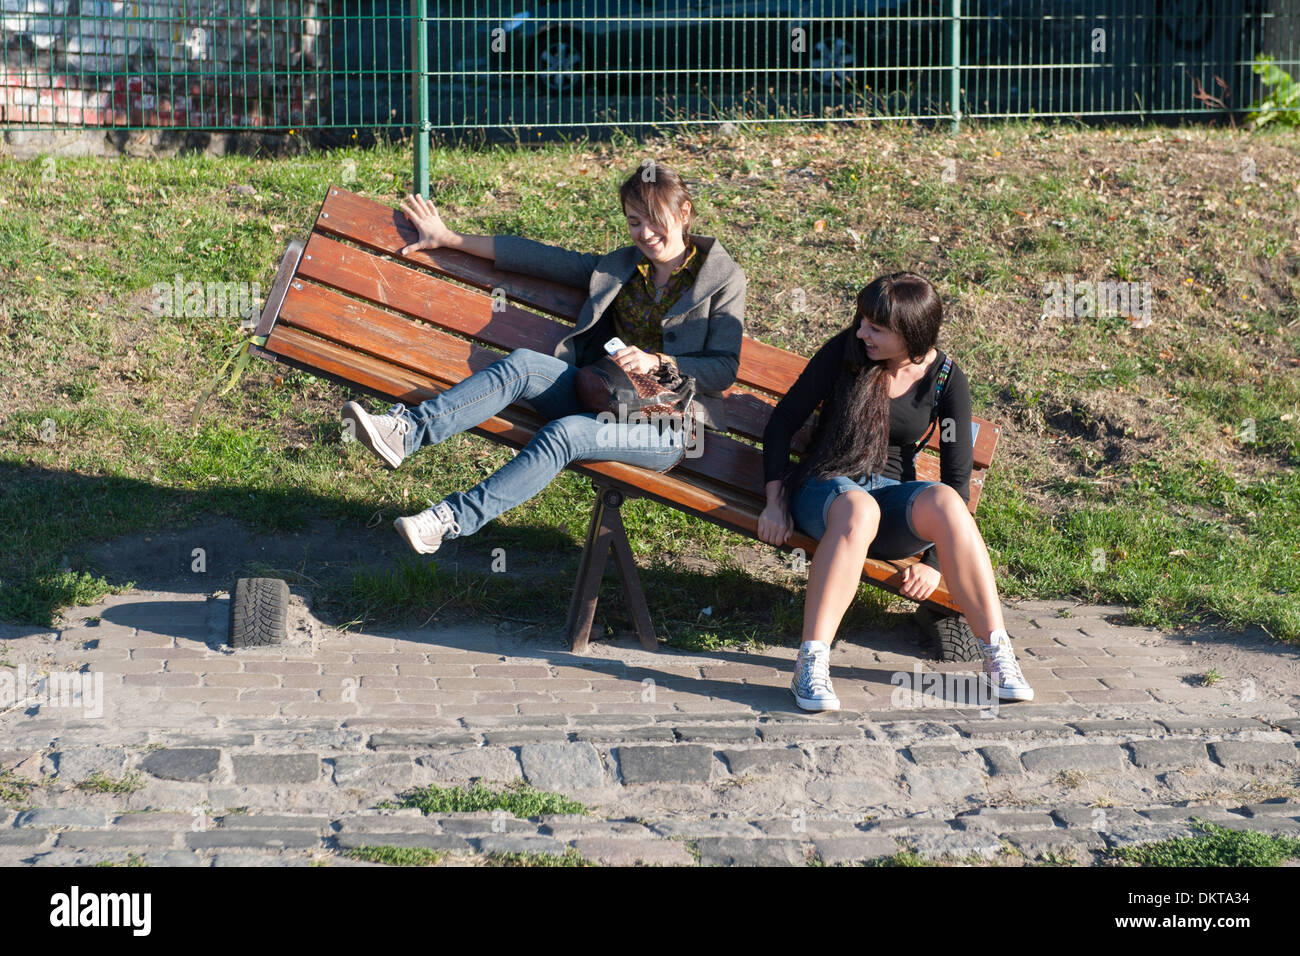 Two girls goofing around on a seesaw park bench installation in Kiev Fashion Park in Kiev, the capital of the Ukraine. - Stock Image